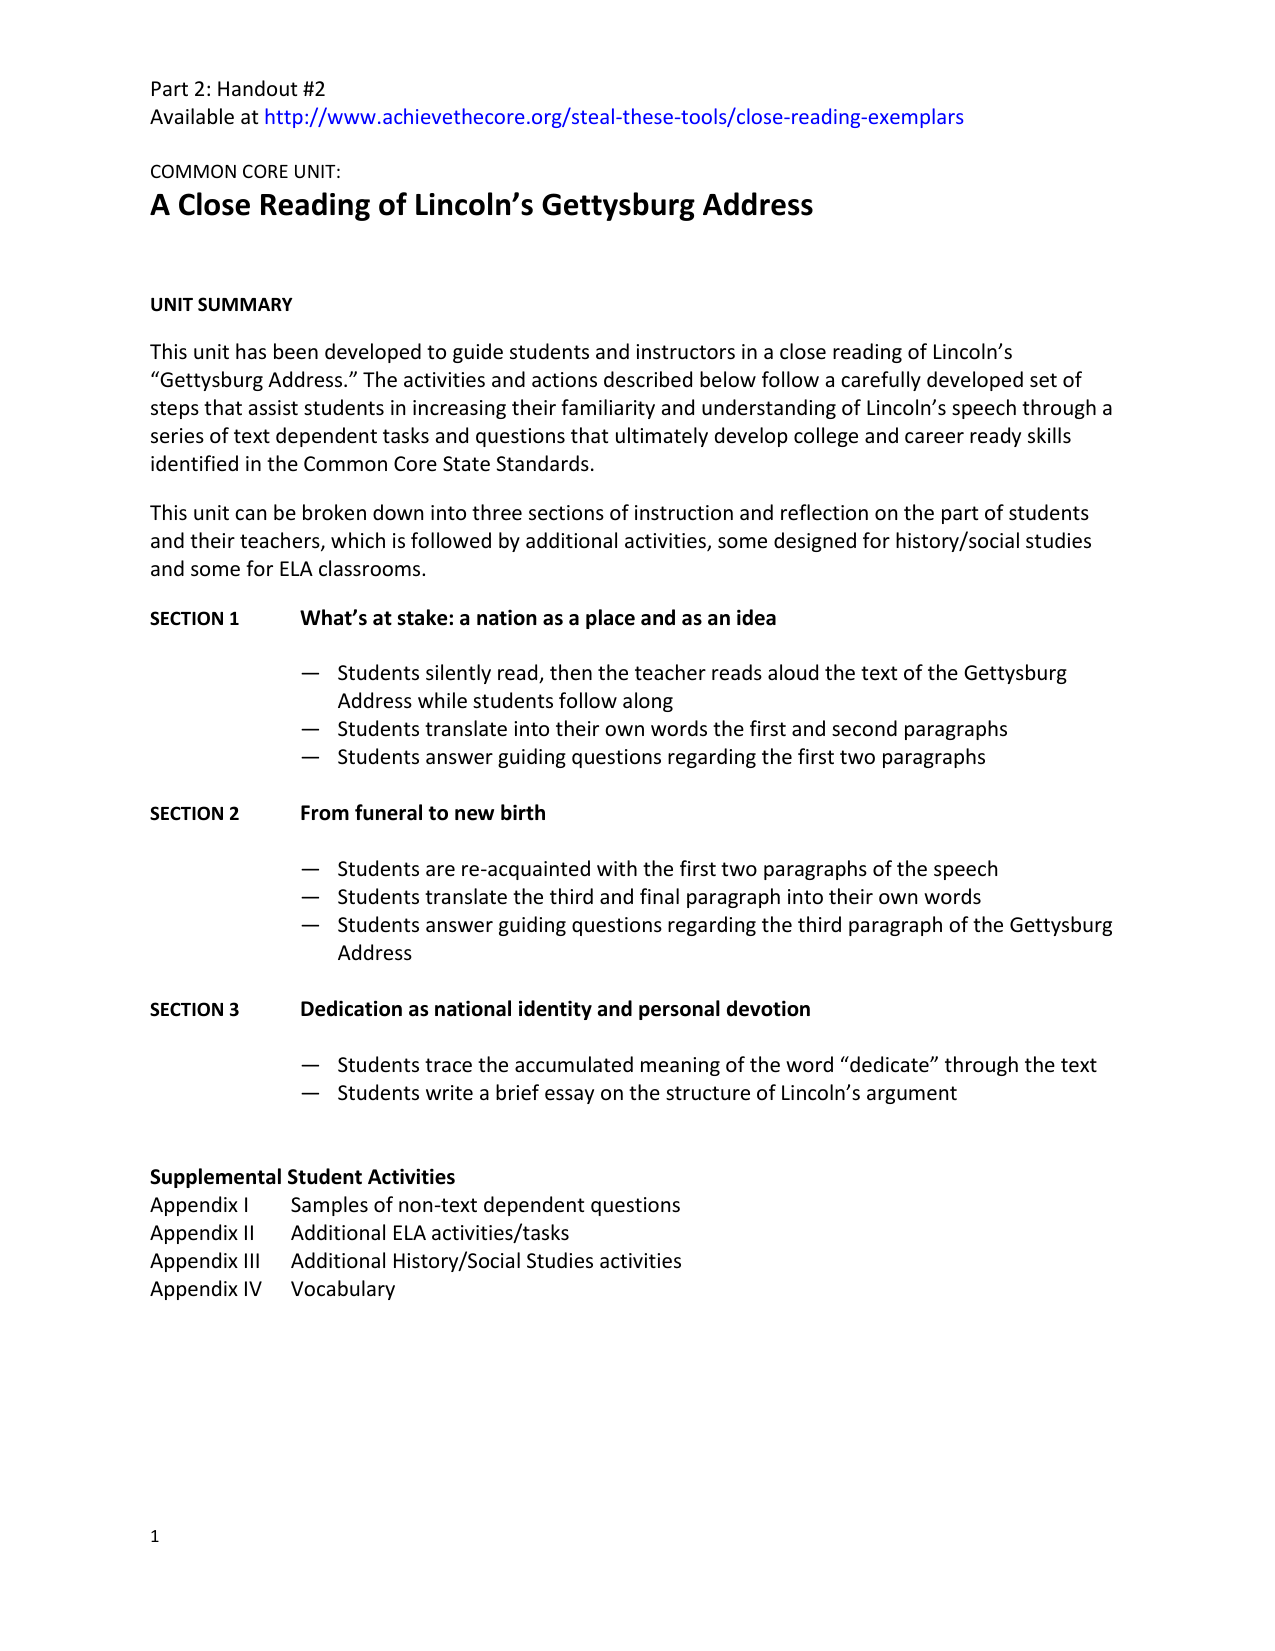 Research Paper Essay  Thesis For An Analysis Essay also Writing High School Essays A Close Reading Of Lincolns Gettysburg Address Essay About High School